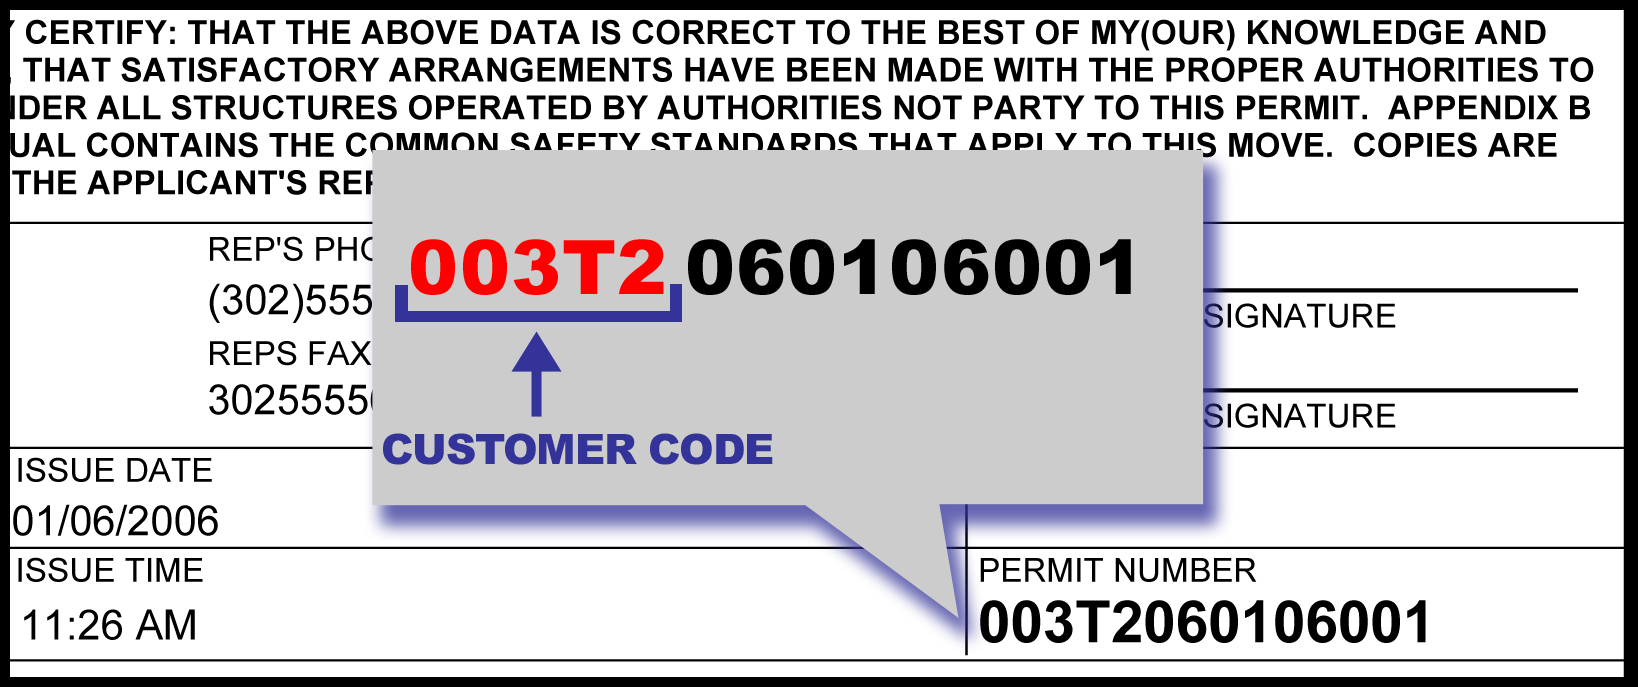 Example Customer Code